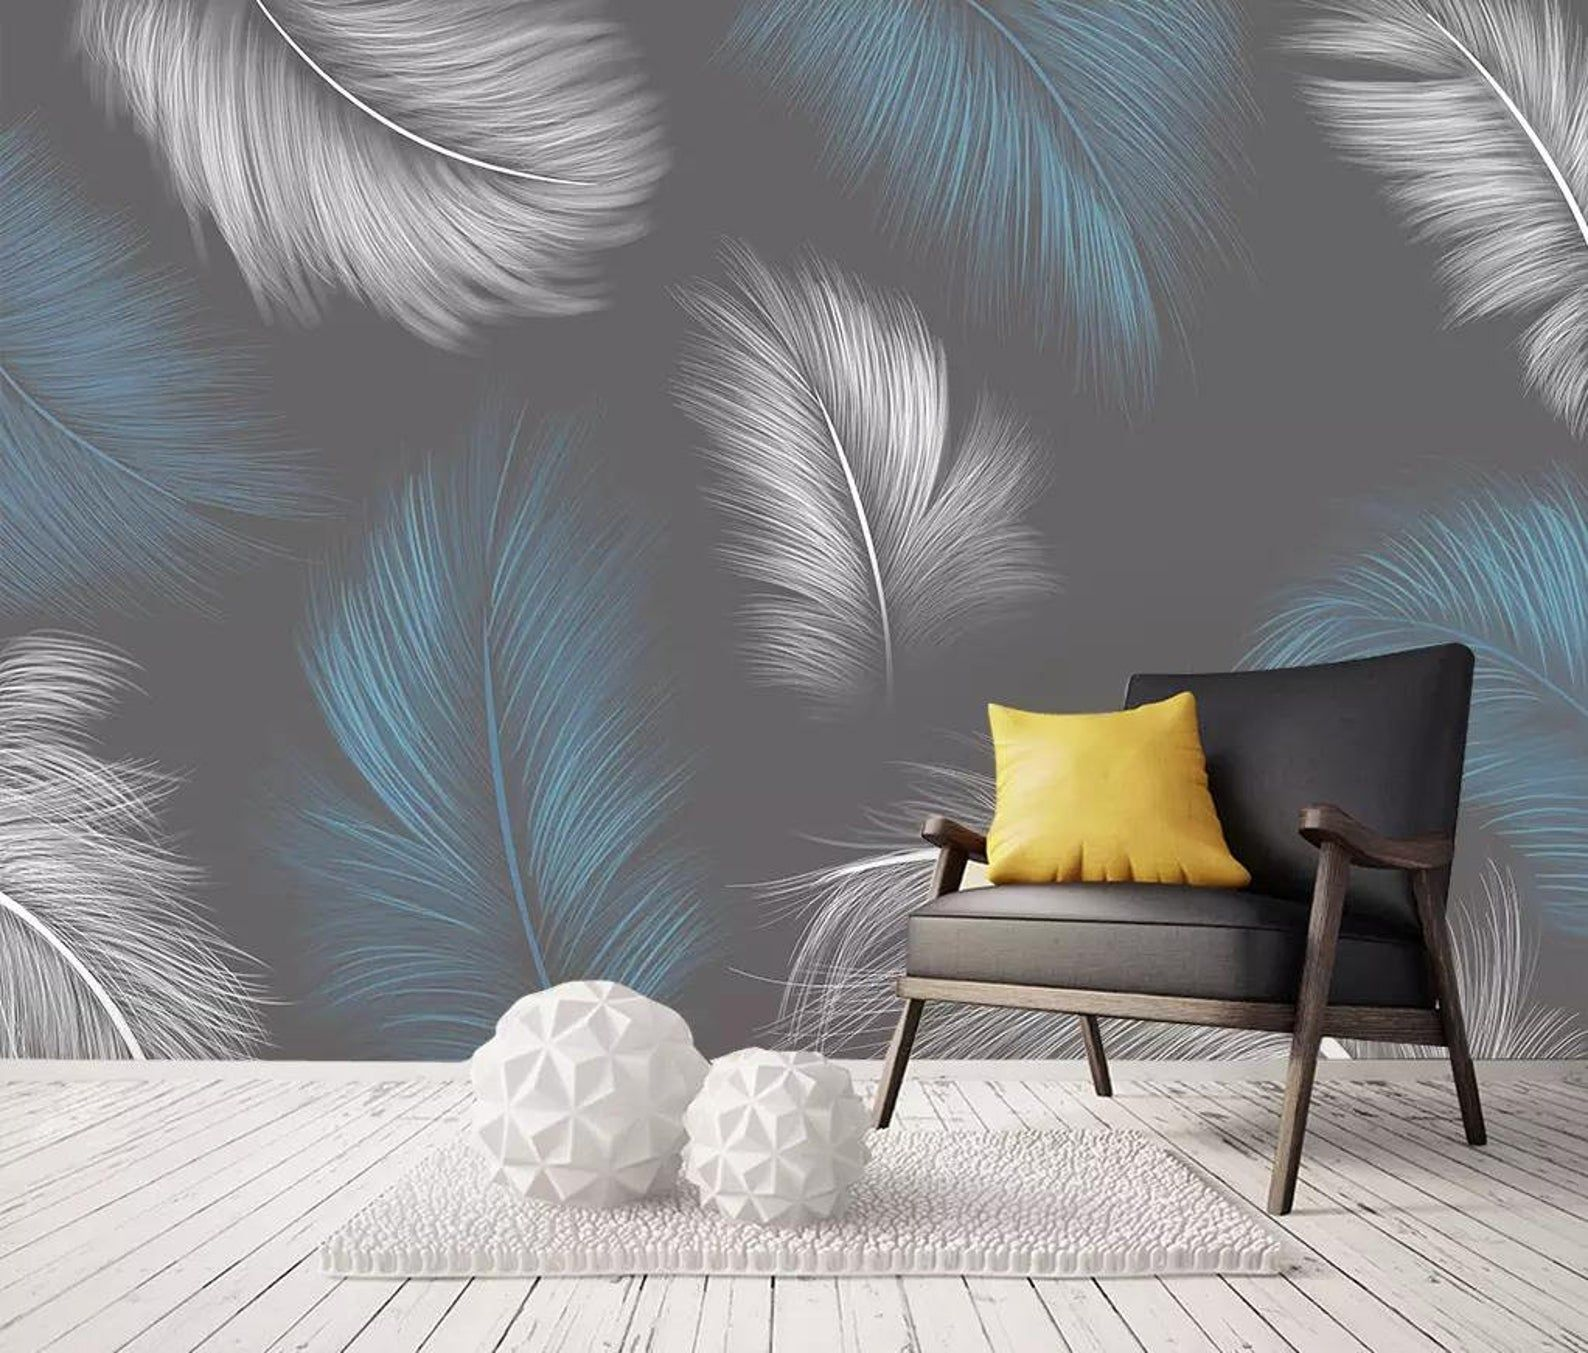 Hand Painted Blue And White Feather Wall Paperremovable Etsy Wallpaper Walls Decor Feather Wallpaper Wall Decor